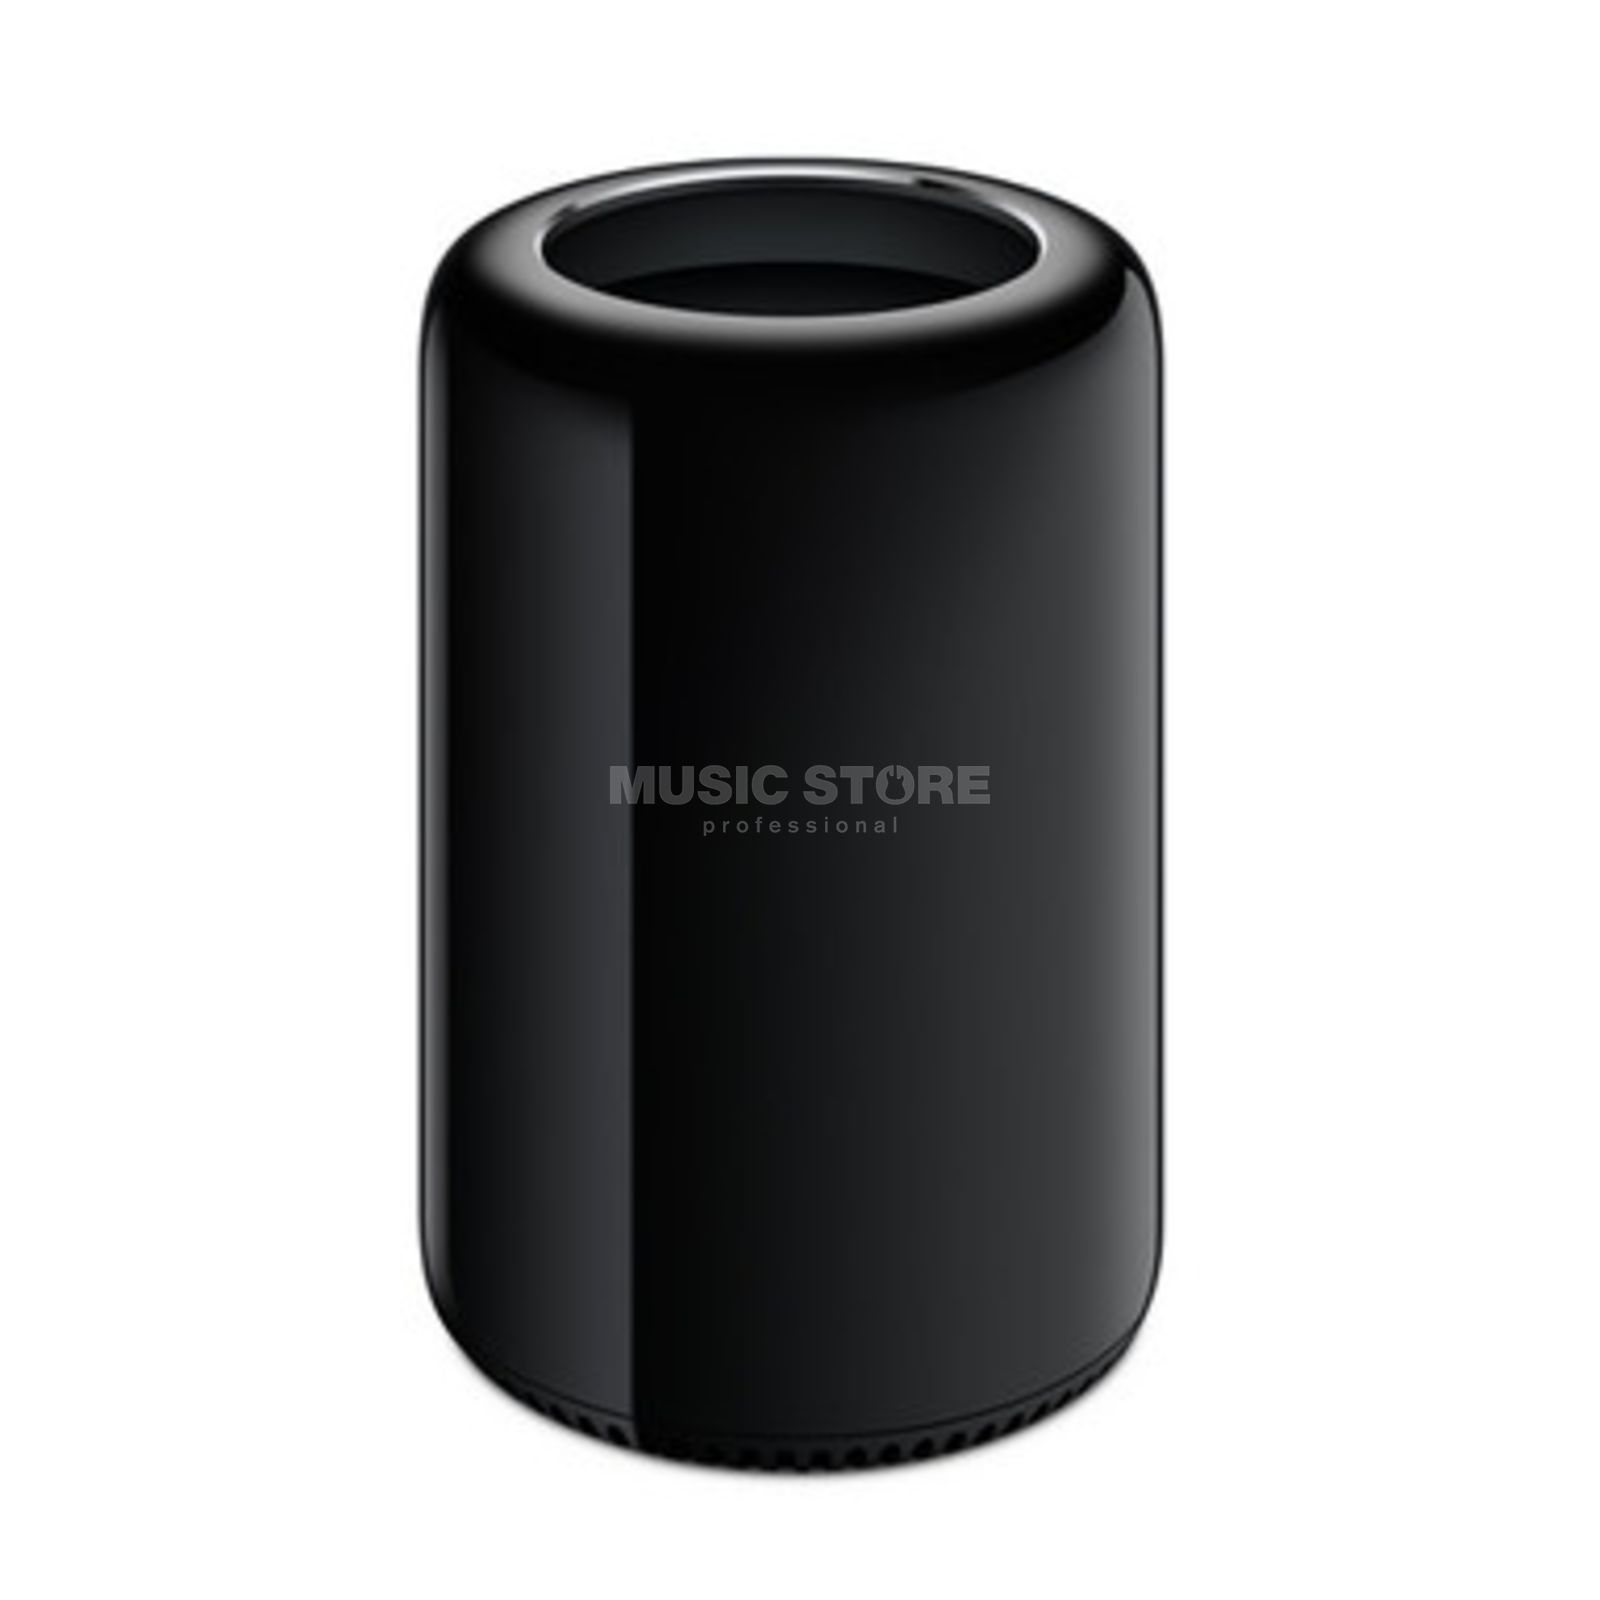 Apple Mac Pro 2.7GHz 12-Core Xeon E5 64GB RAM, 1TB PCIe Flash Product Image